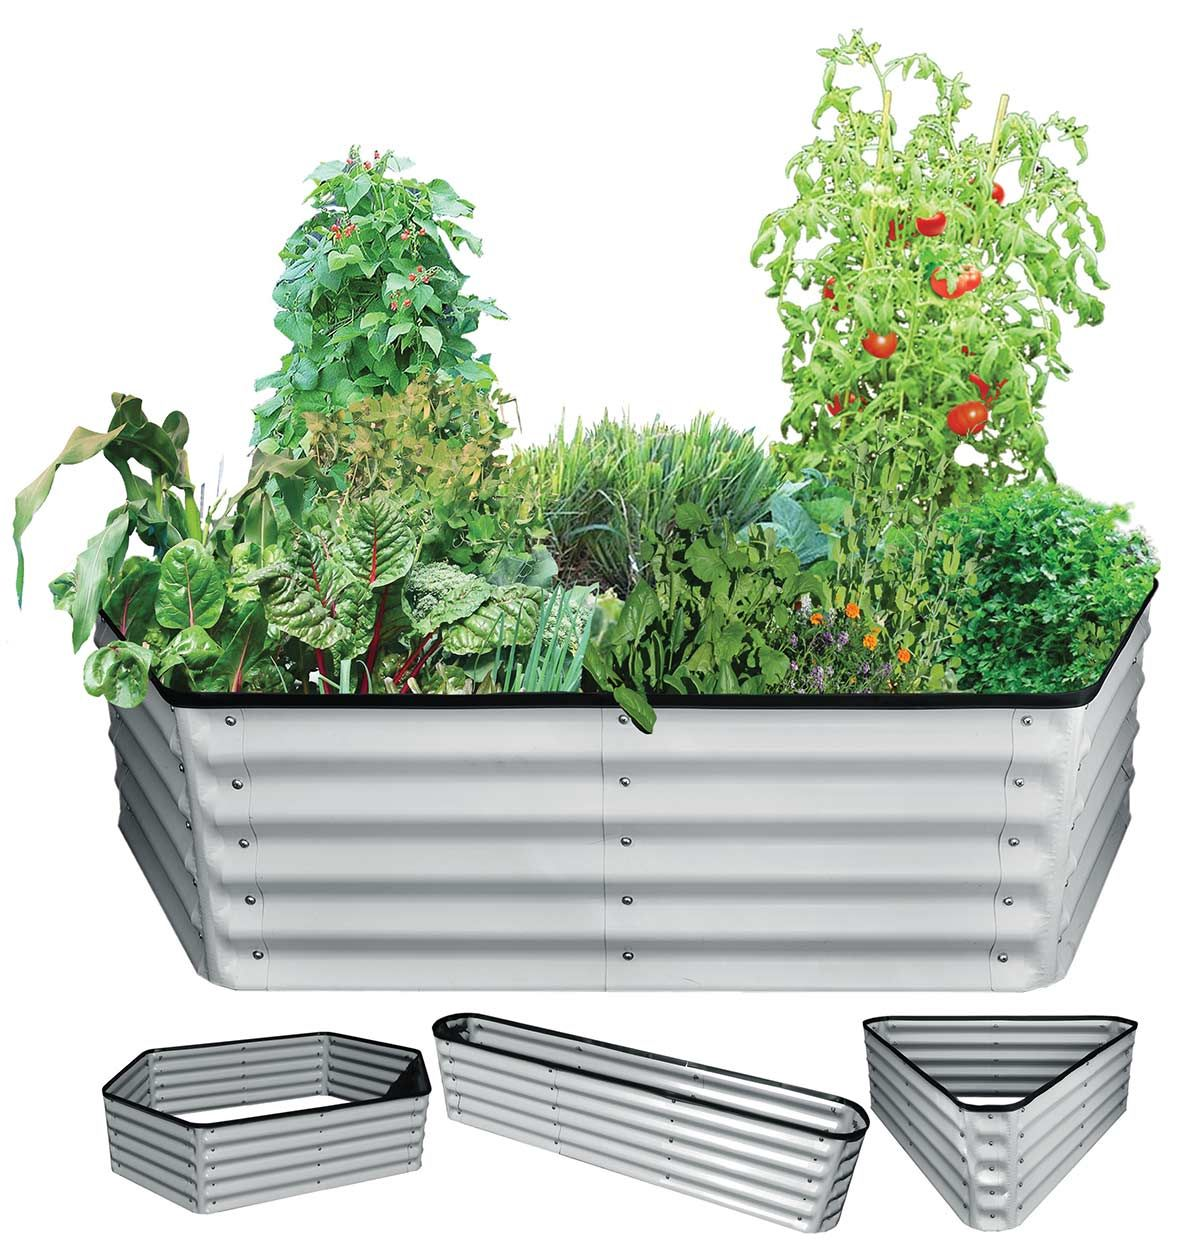 aldi raised garden bed Google Search Raised garden